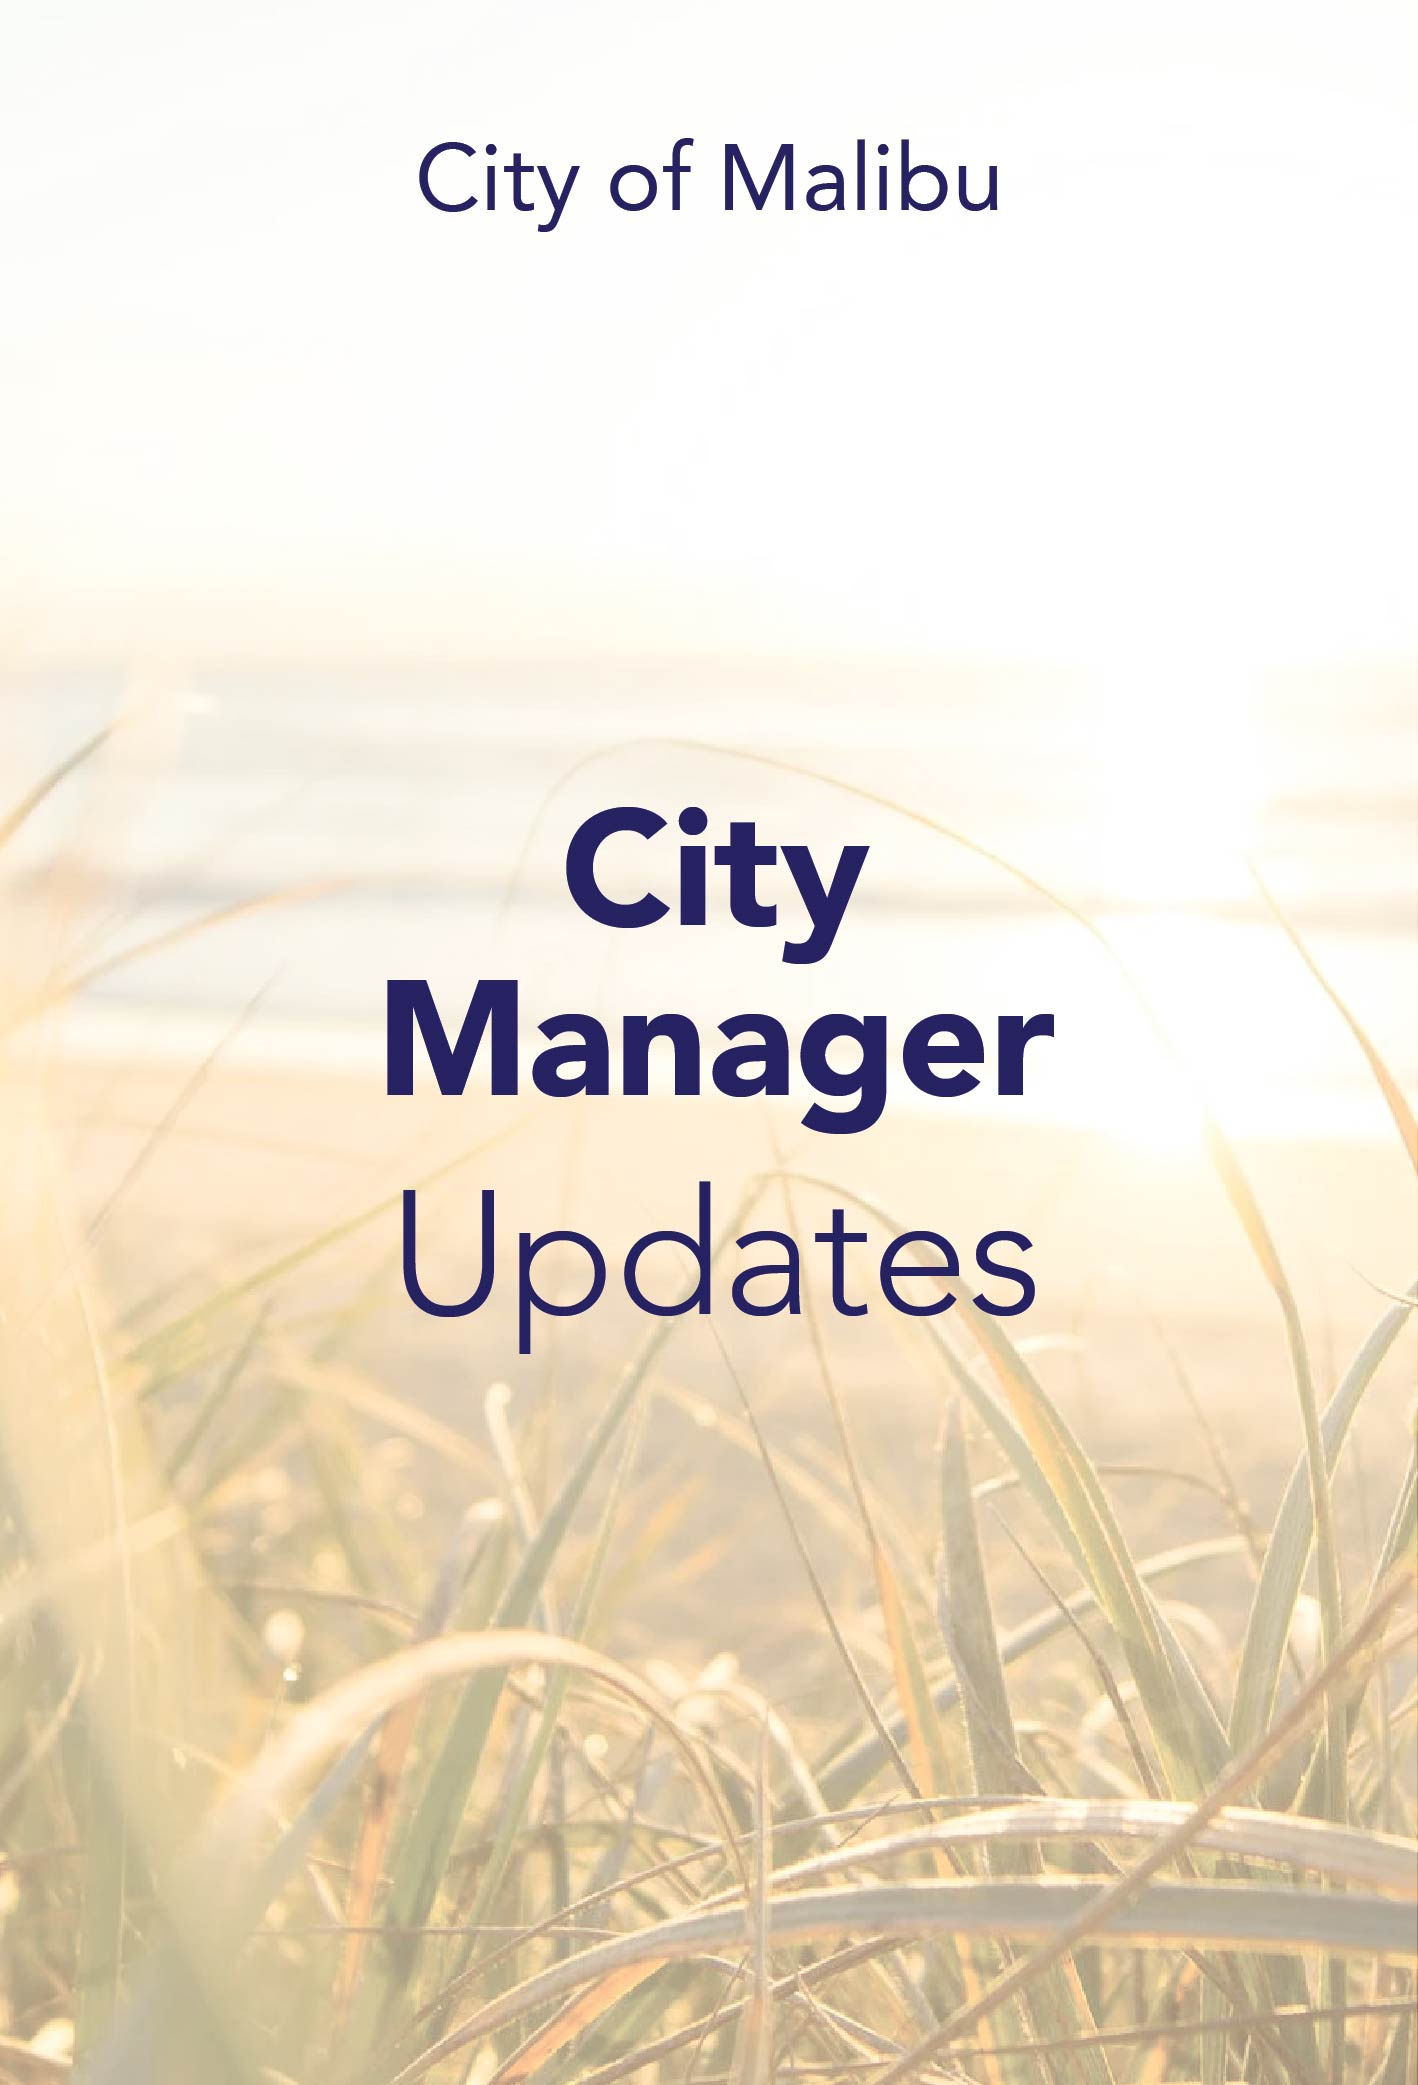 City Manager Update September 18, 2020